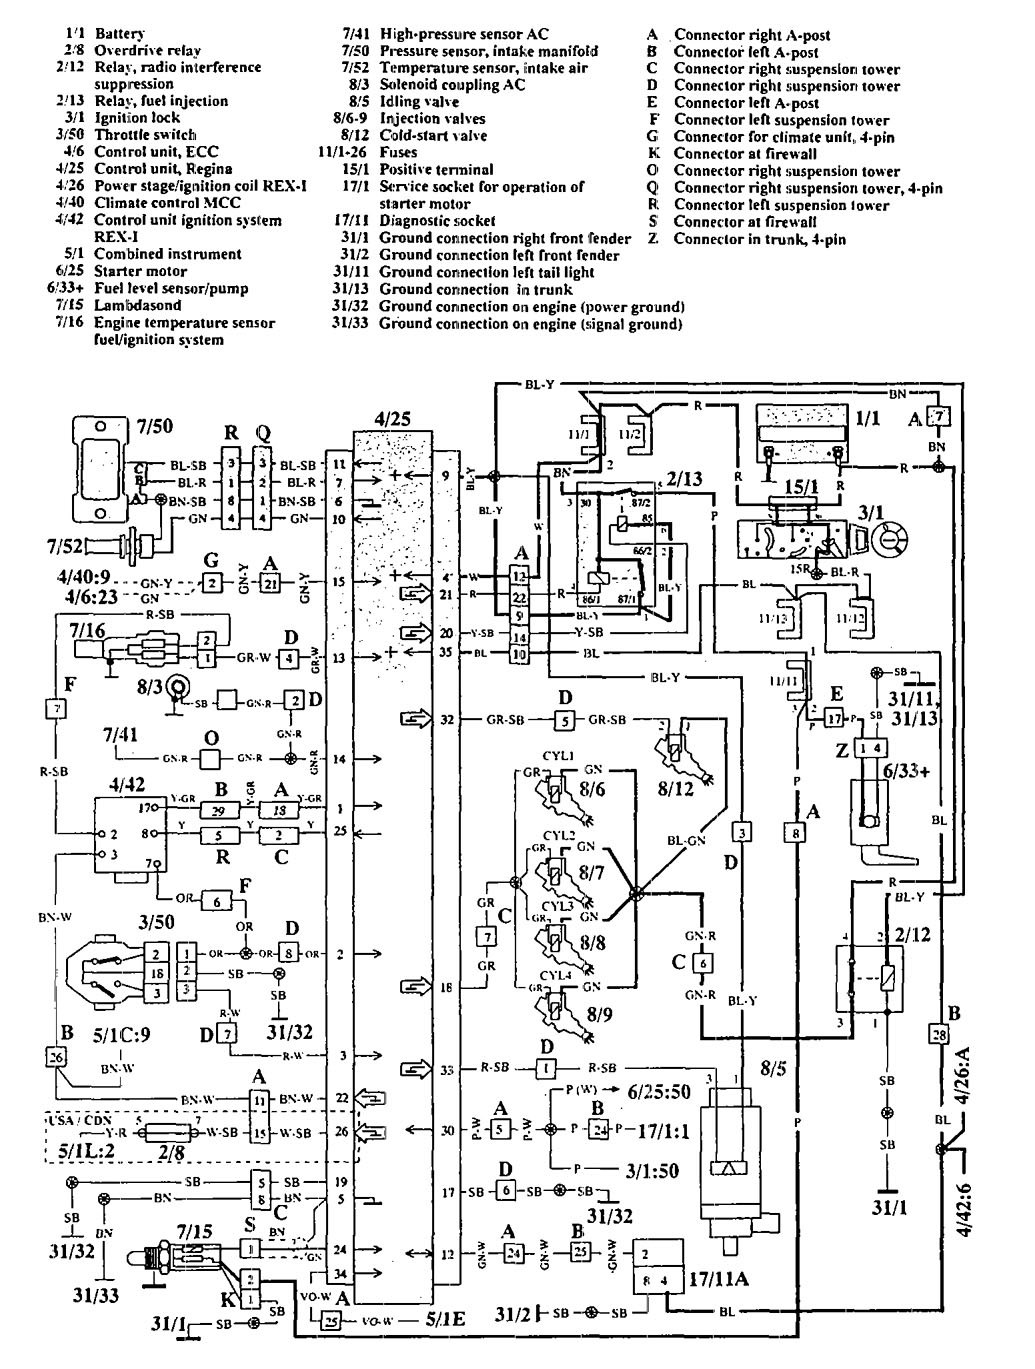 hight resolution of 1992 volvo 940 wiring diagram data wiring diagram schema rh 26 danielmeidl de 1995 volvo 940 radio wiring diagram volvo 940 stereo wiring diagram